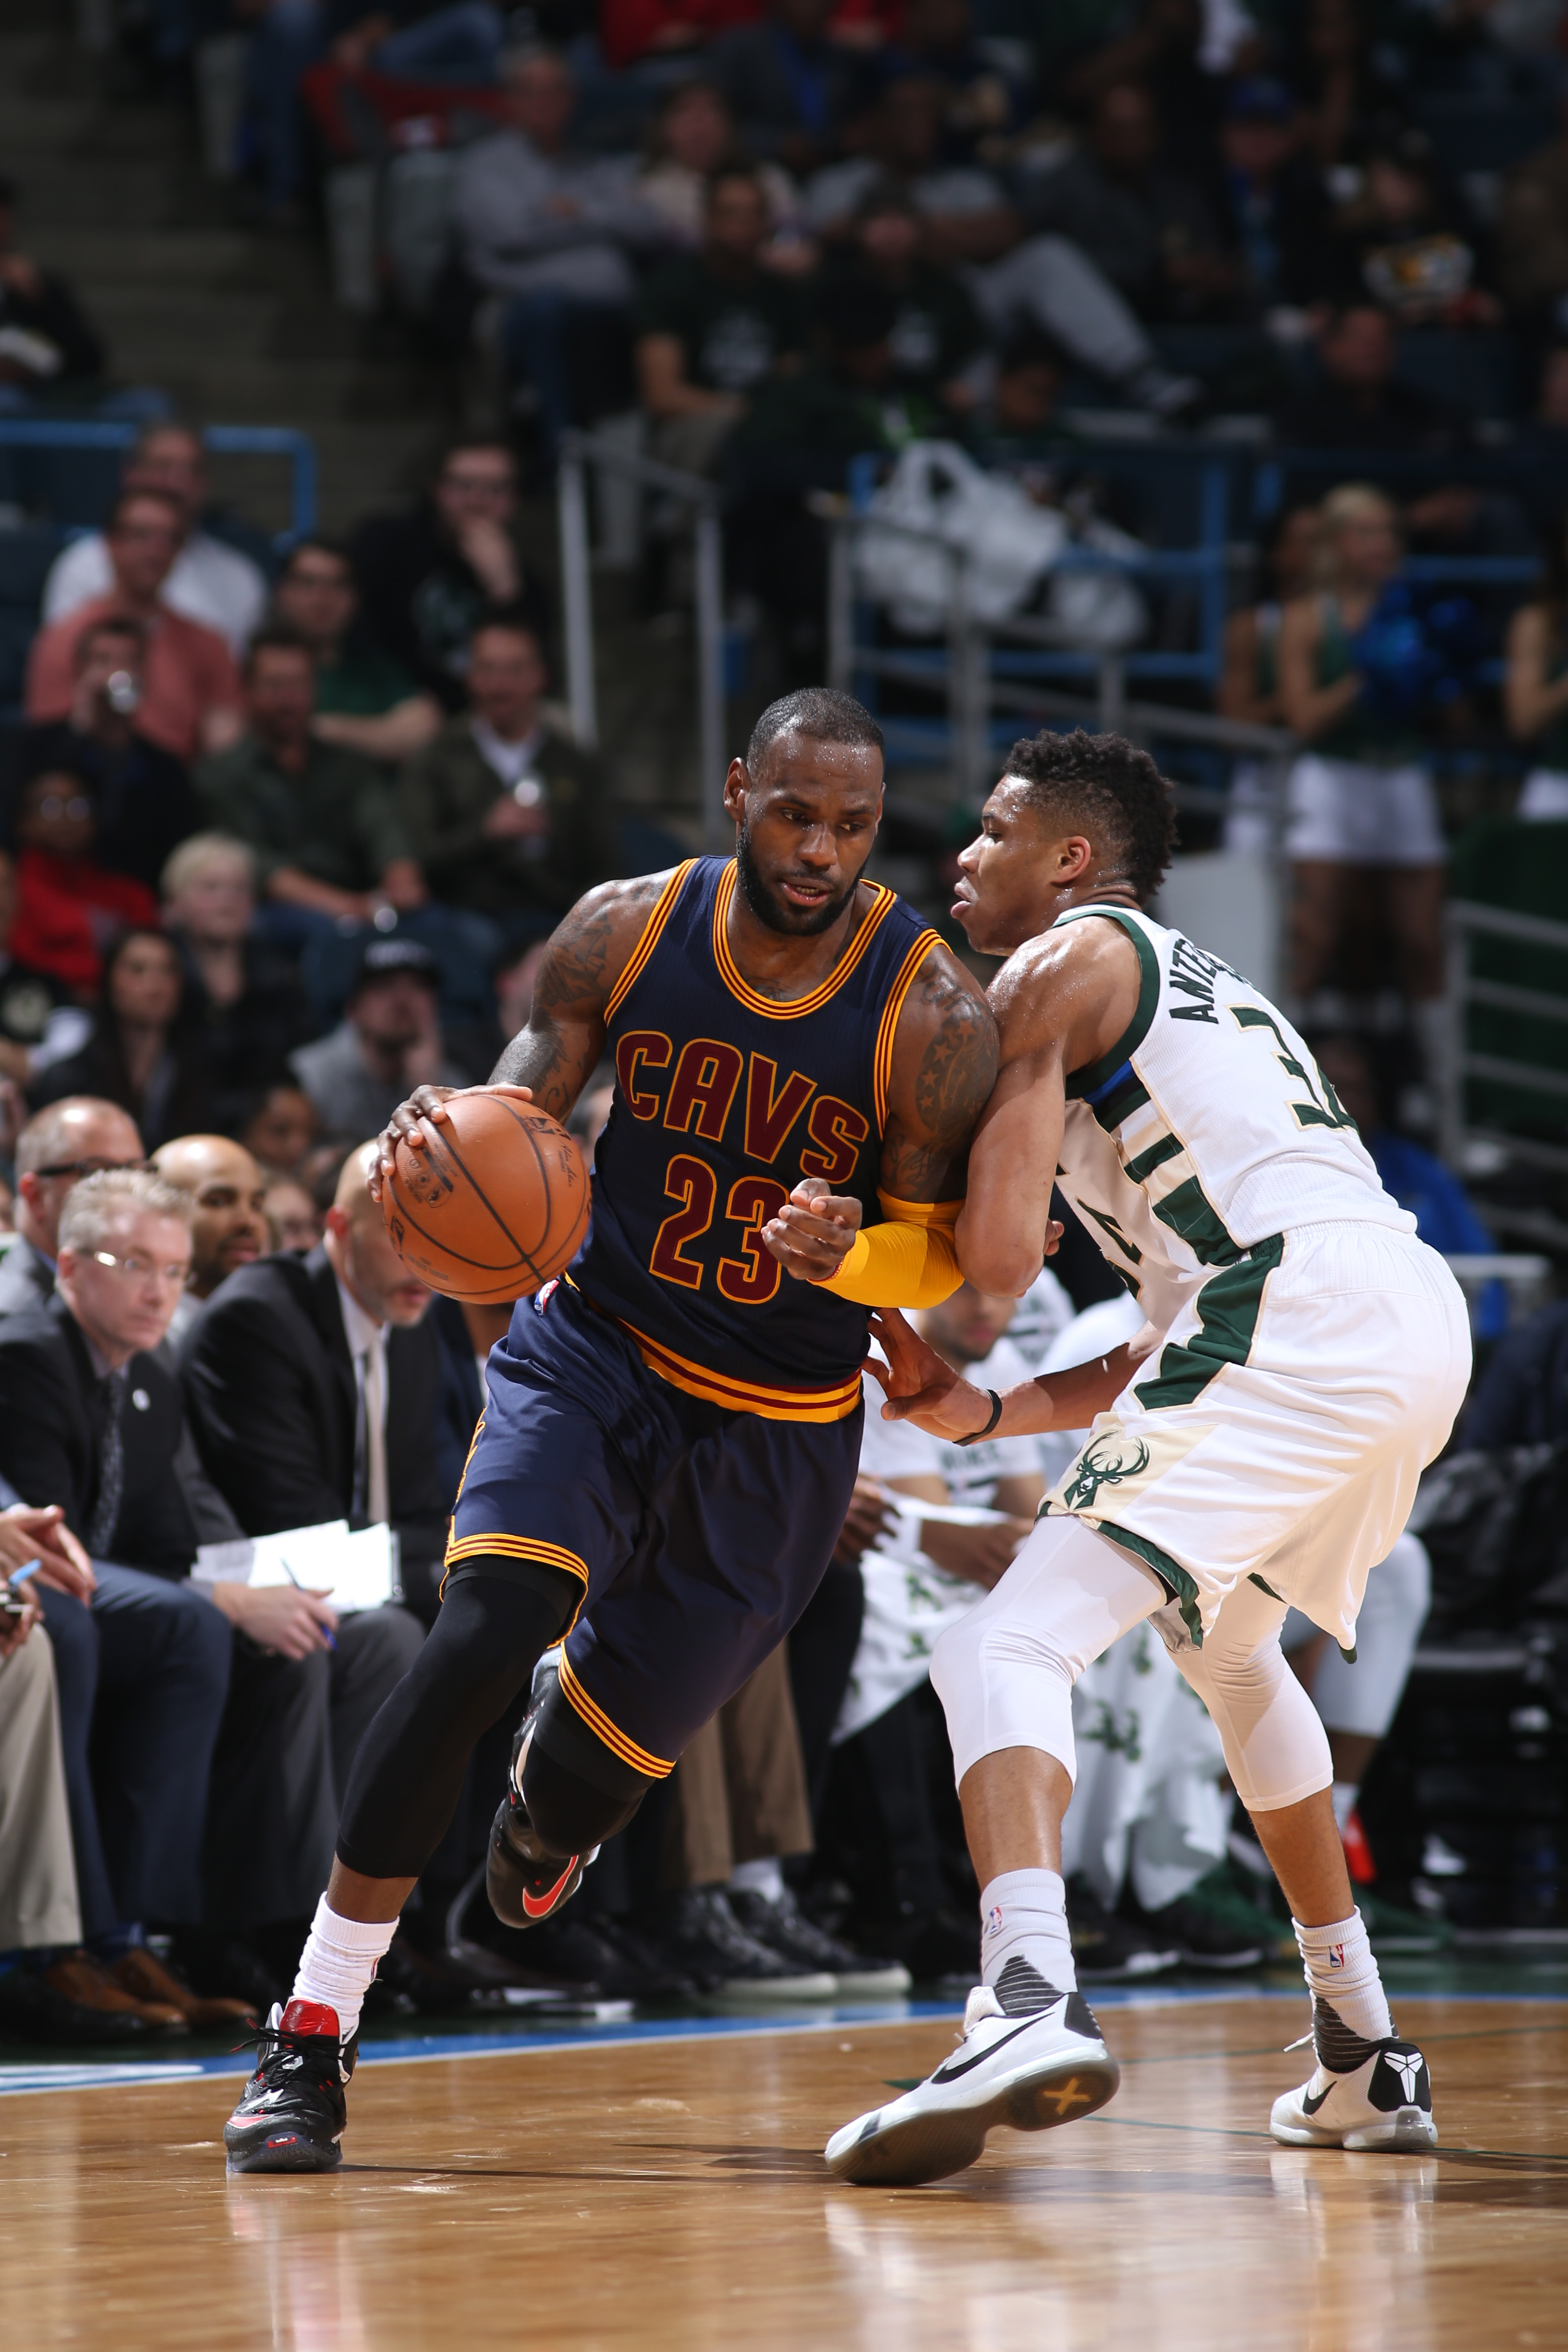 MILWAUKEE, WI - APRIL 5:  LeBron James #23 of the Cleveland Cavaliers handles the ball against Giannis Antetokounmpo #34 of the Milwaukee Bucks on April 5, 2016 at the BMO Harris Bradley Center in Milwaukee, Wisconsin. (Photo by Gary Dineen/NBAE via Getty